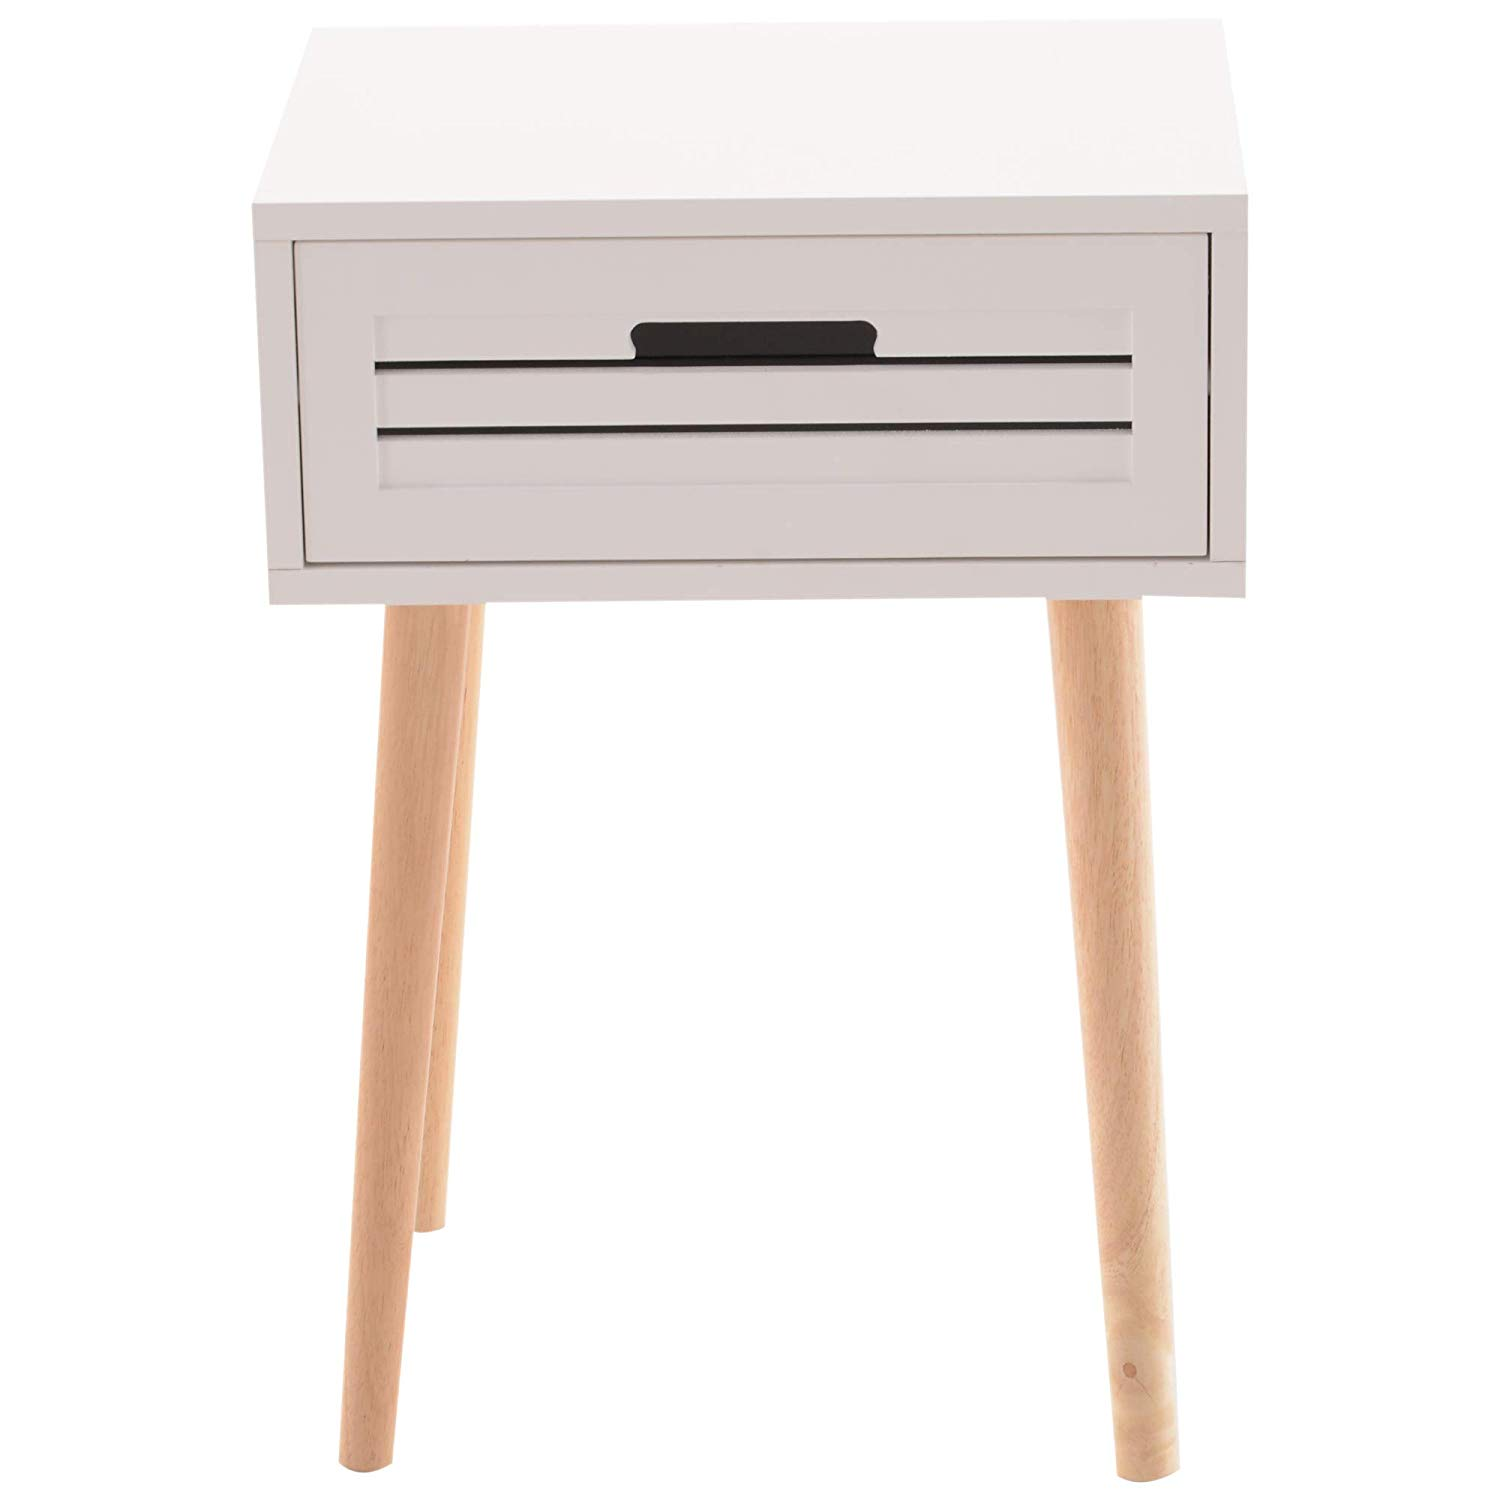 homcom wood mid century modern end table night stand accent with drawer storage white kitchen dining oval glass top kids desk aluminium door threshold round industrial coffee ikea